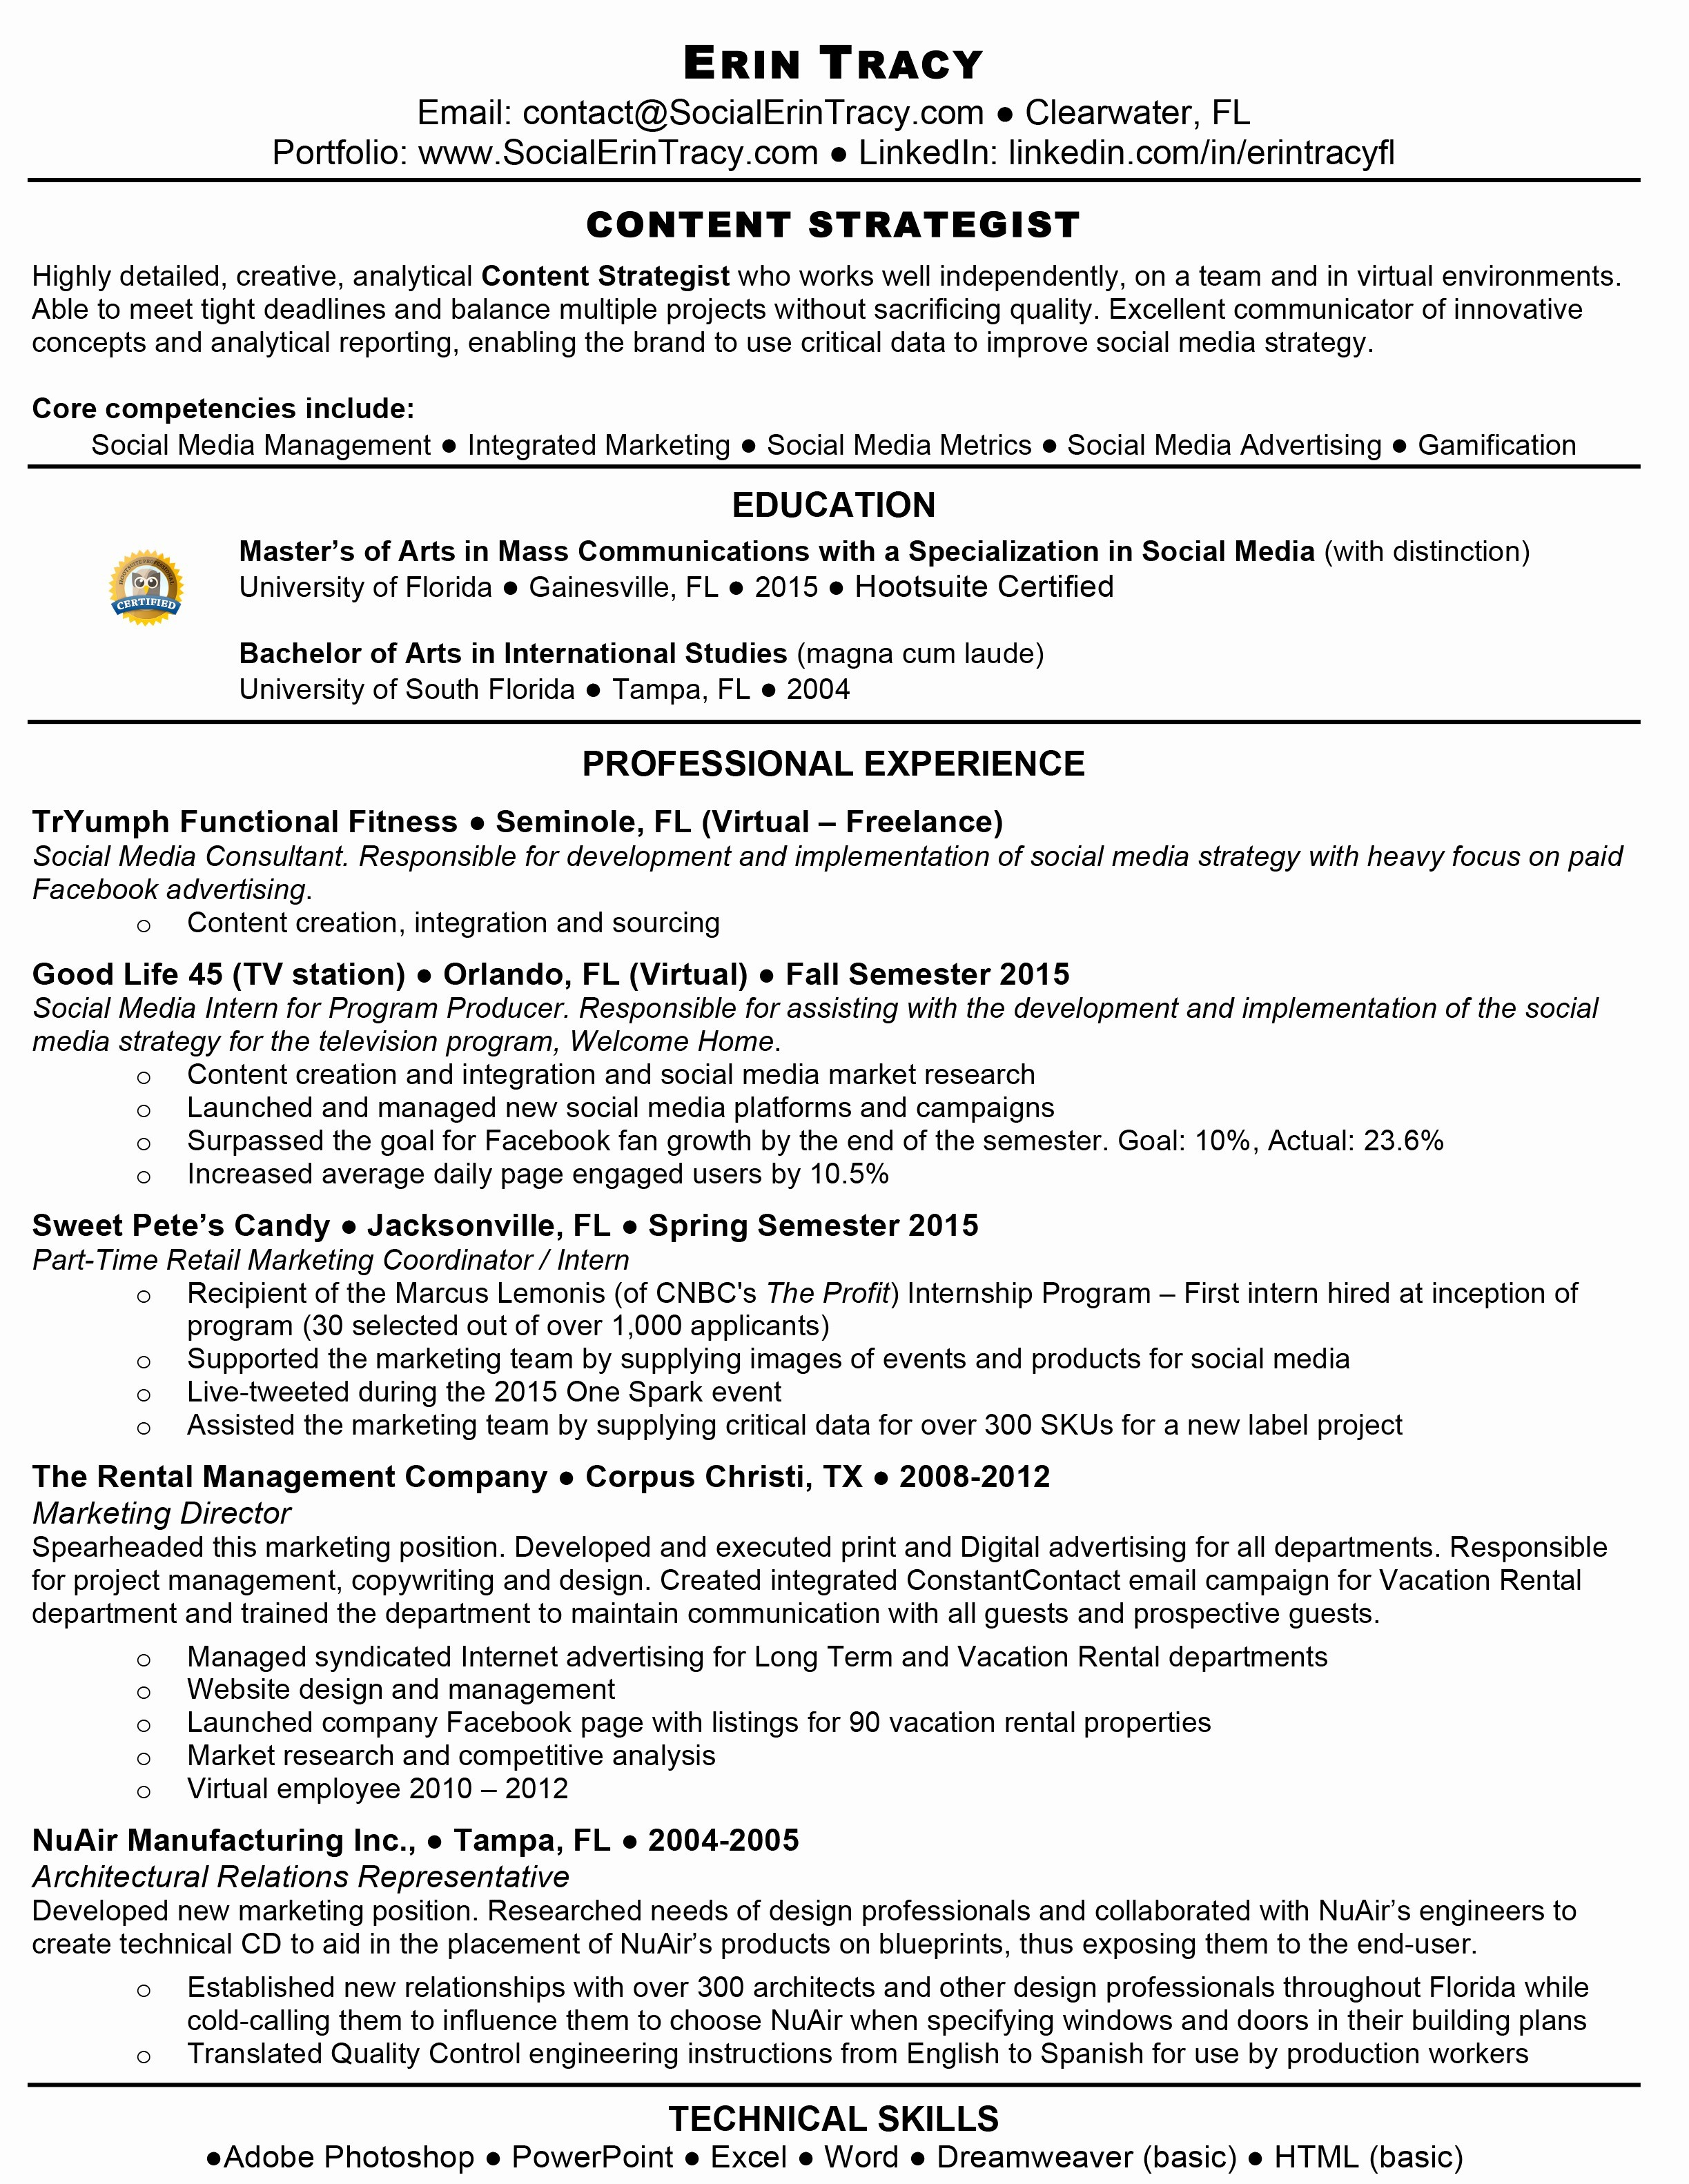 Creative Cover Letter Template - Cover Letter Templates for Creative Jobs Refrence Job Fer Letter